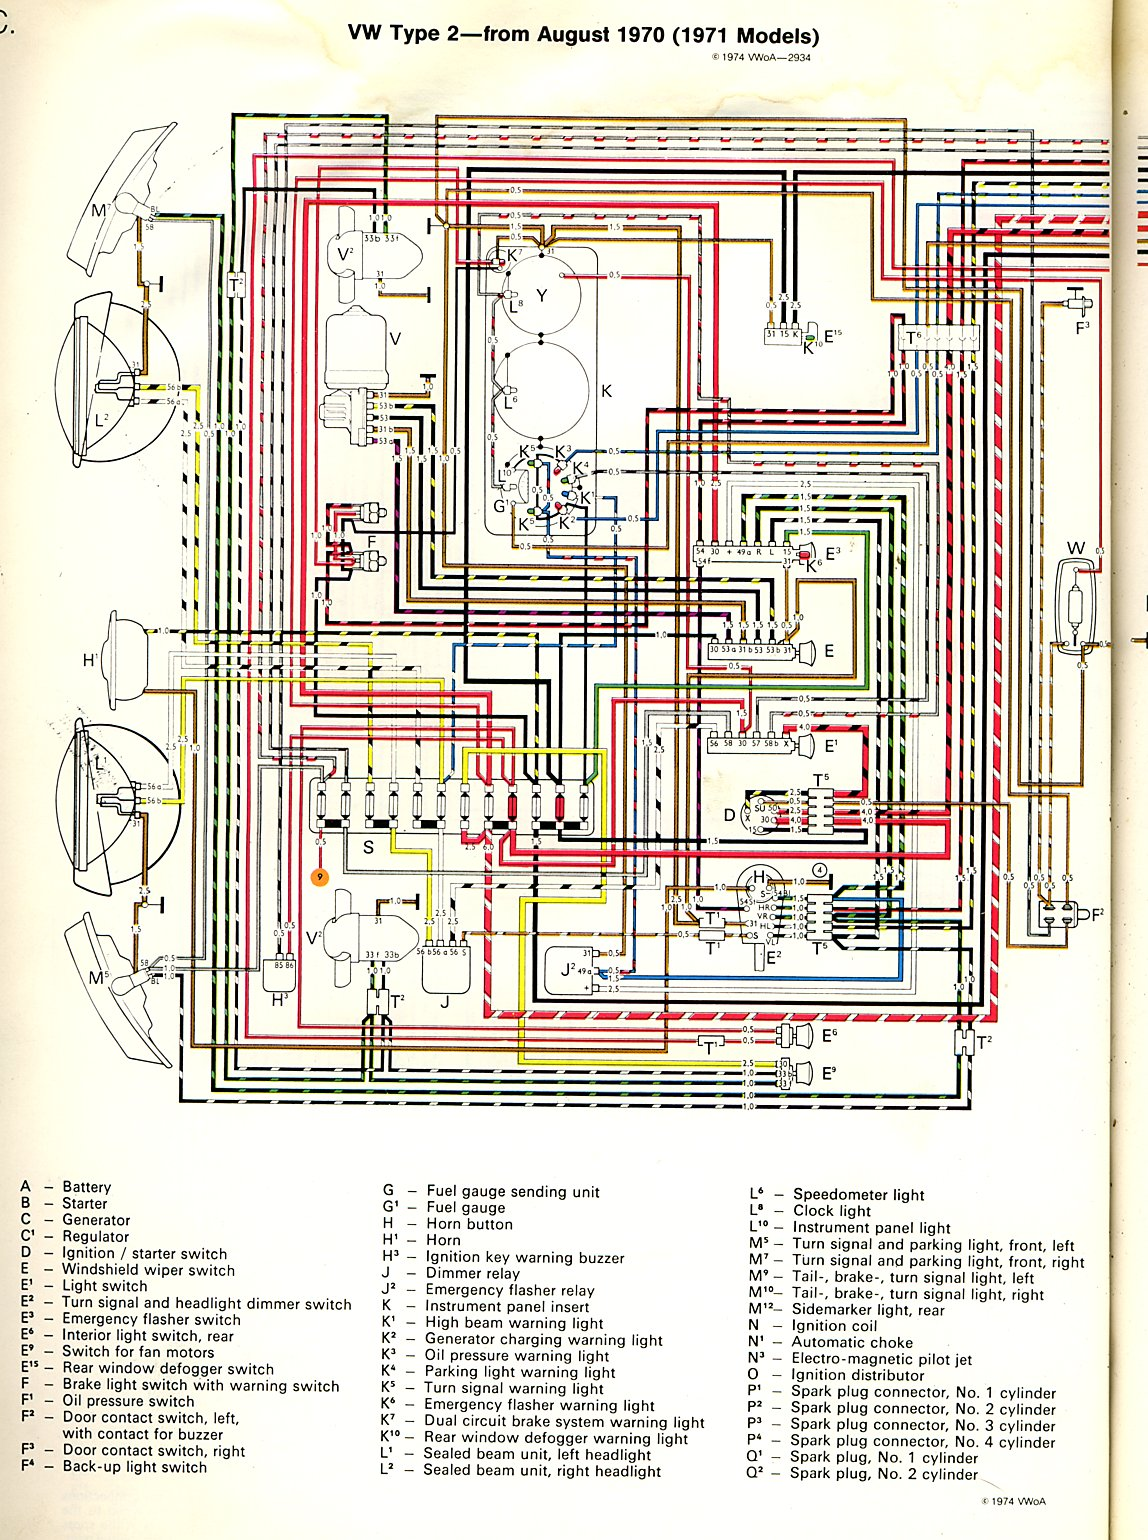 baybus_71a thesamba com type 2 wiring diagrams 1969 vw squareback wiring diagram at webbmarketing.co